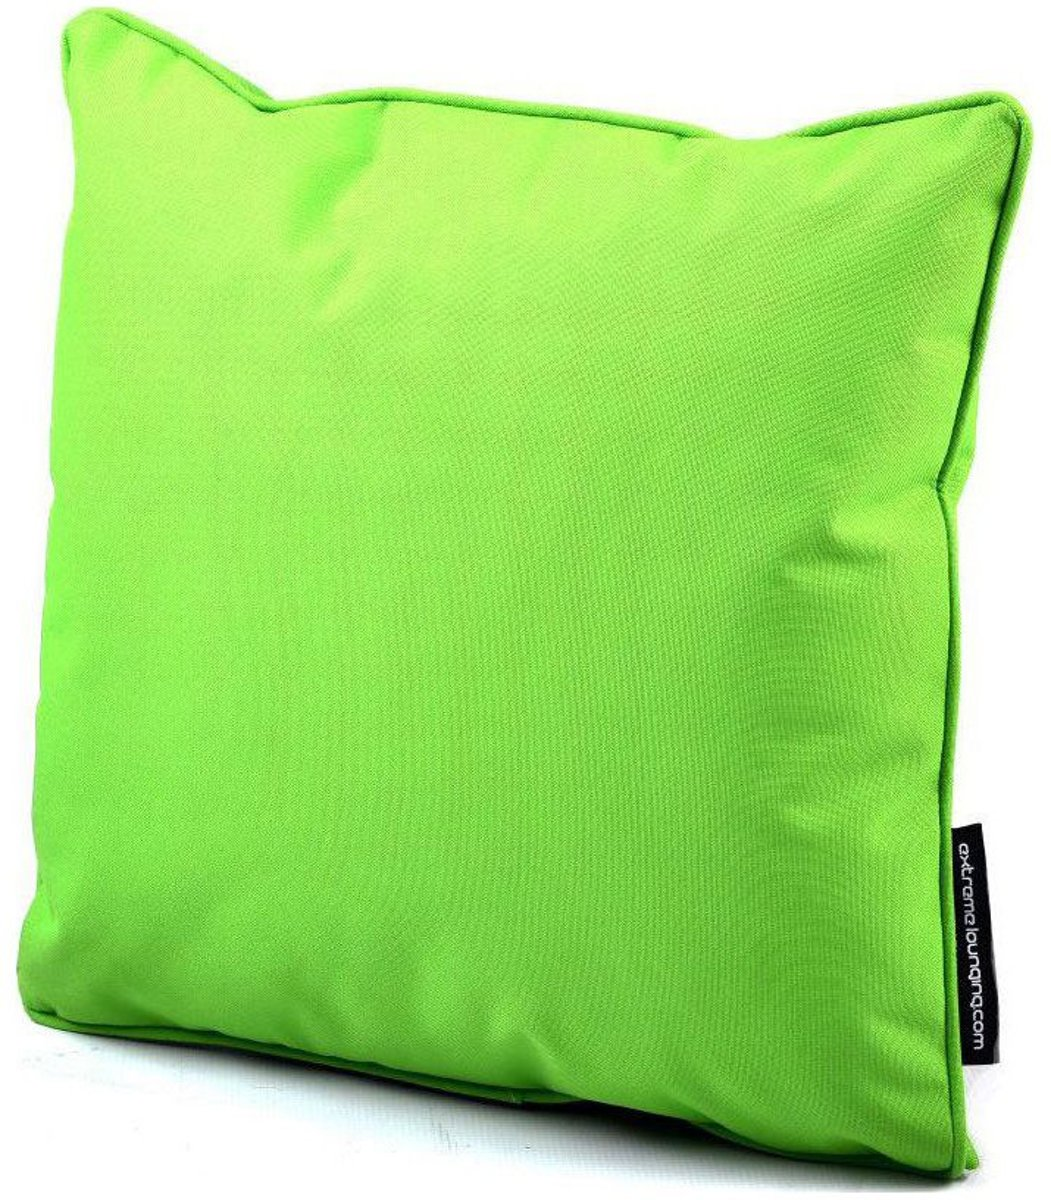 Extreme Lounging B-cushion Sierkussen - Lime kopen